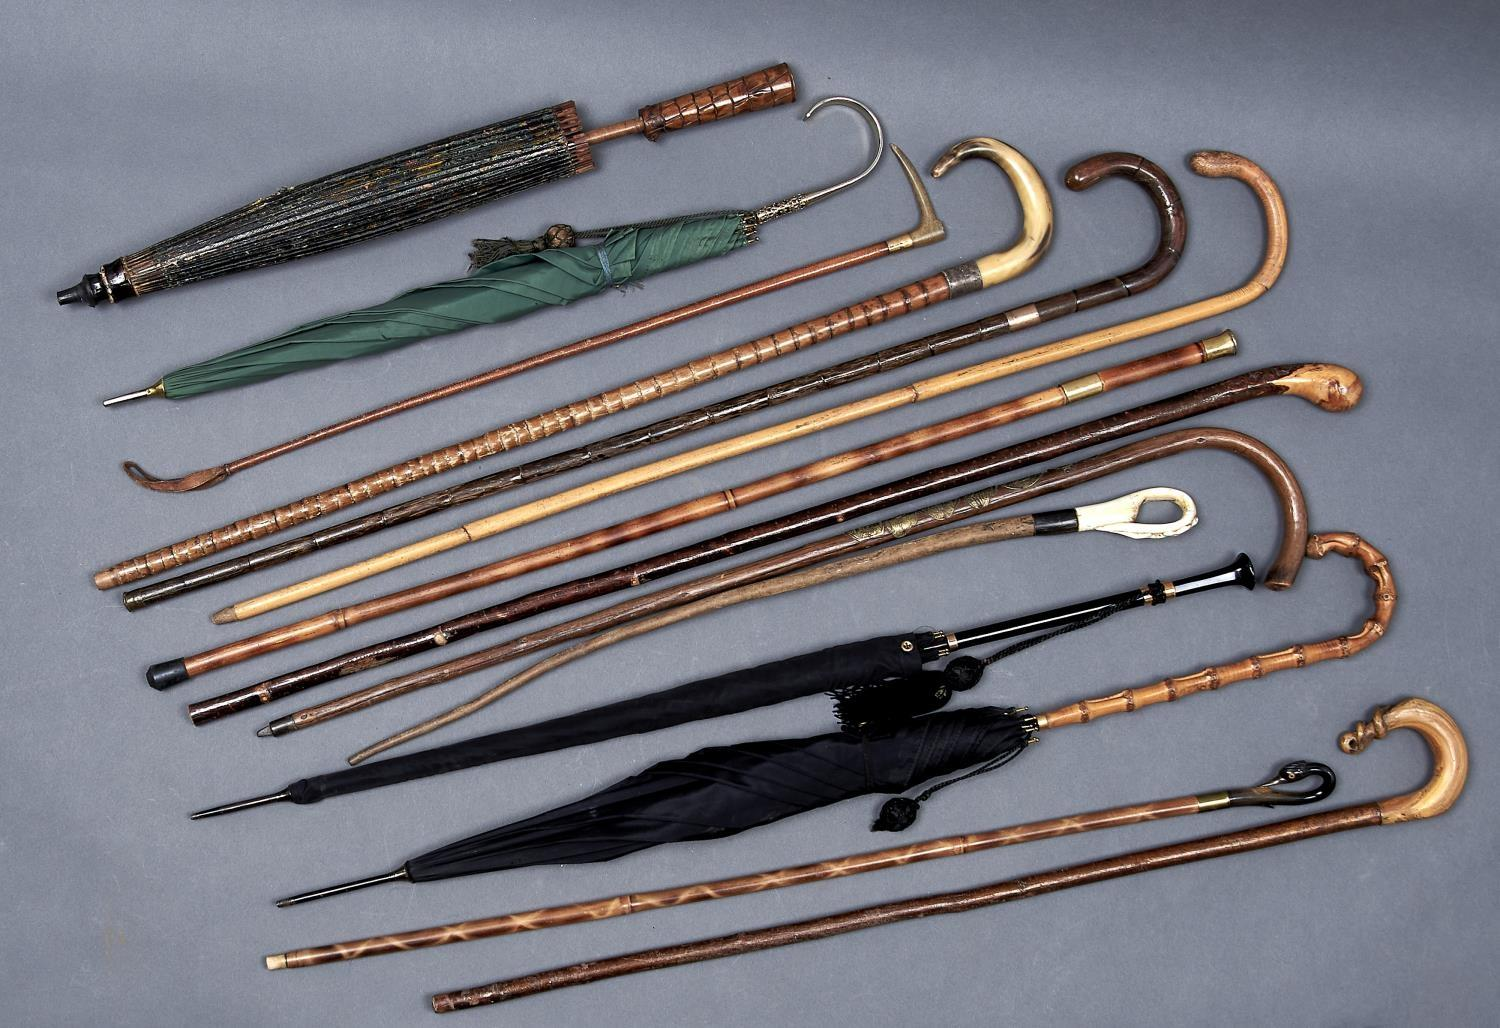 A COLLECTION OF WALKING CANES, STICKS AND PARASOLS, LATE 19TH - MID 20TH C, INCLUDING A 9CT GOLD